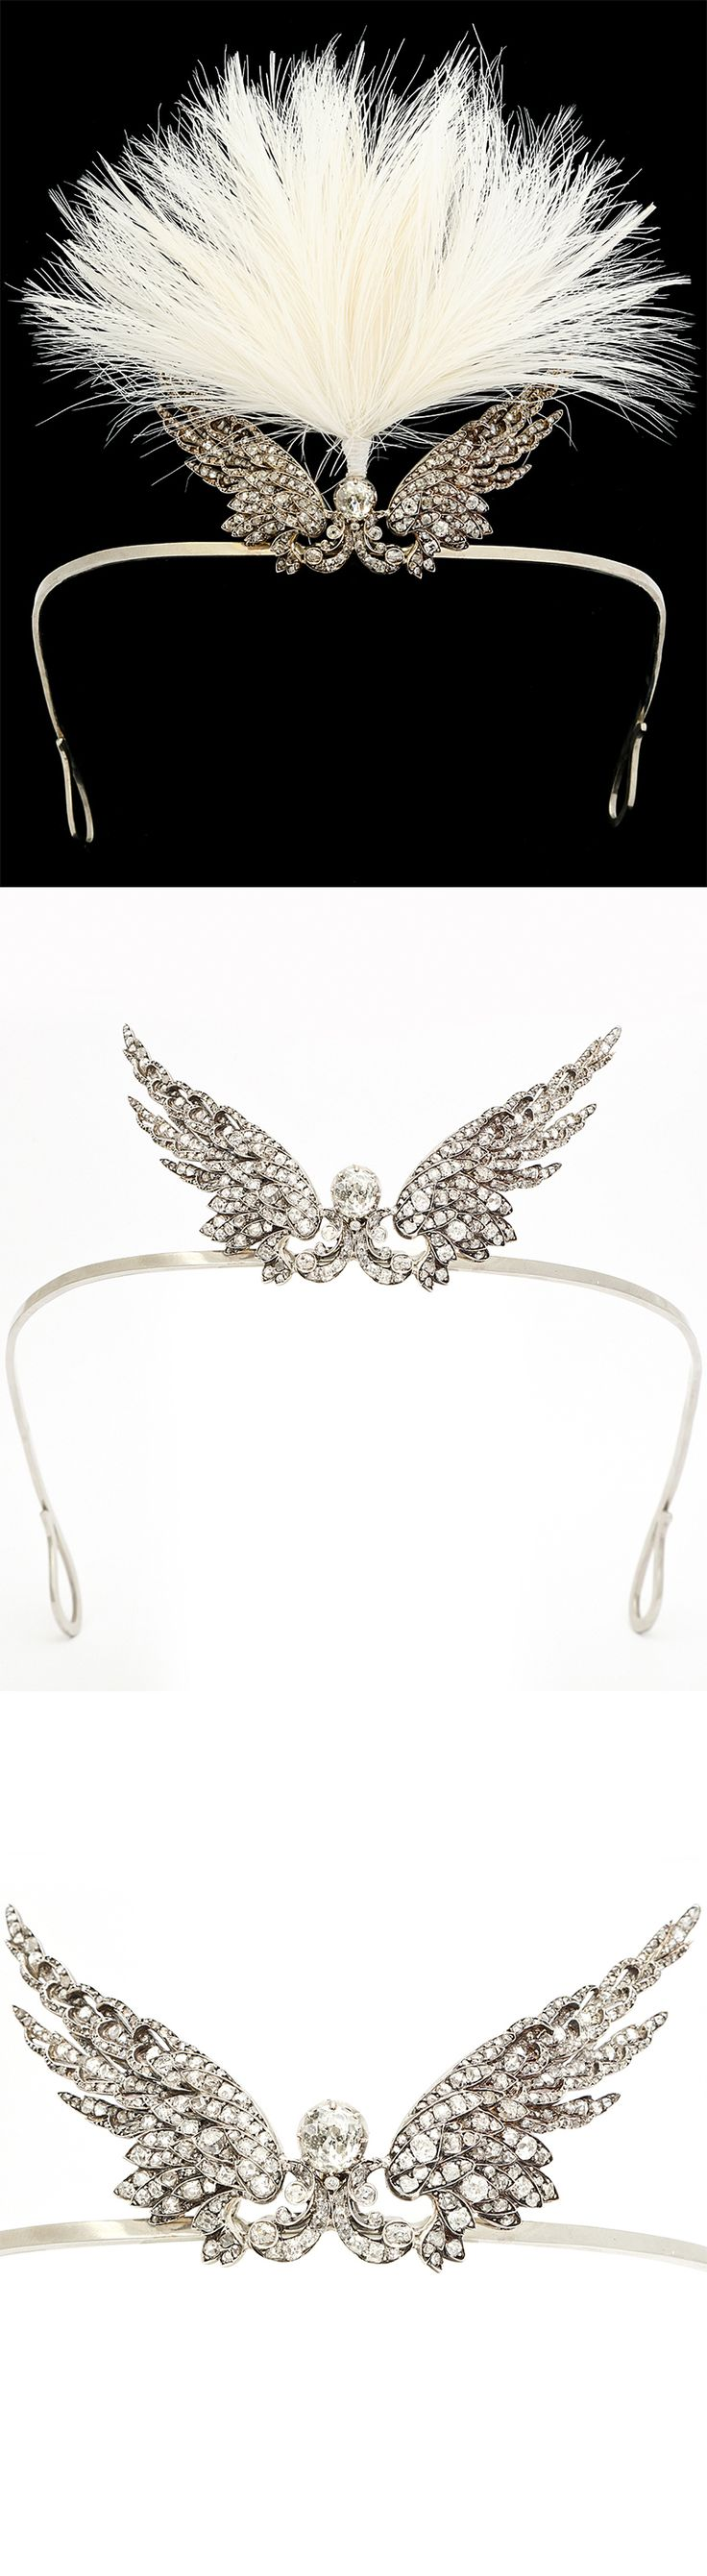 Antique Diamond and Feathered Angel Wing Tiara. Belle Epoque angel wing tiara set with old-mine diamond 'feathers', mounted in silver and gold with silver headband. English, ca. 1900. Width: 3 5/8 inches